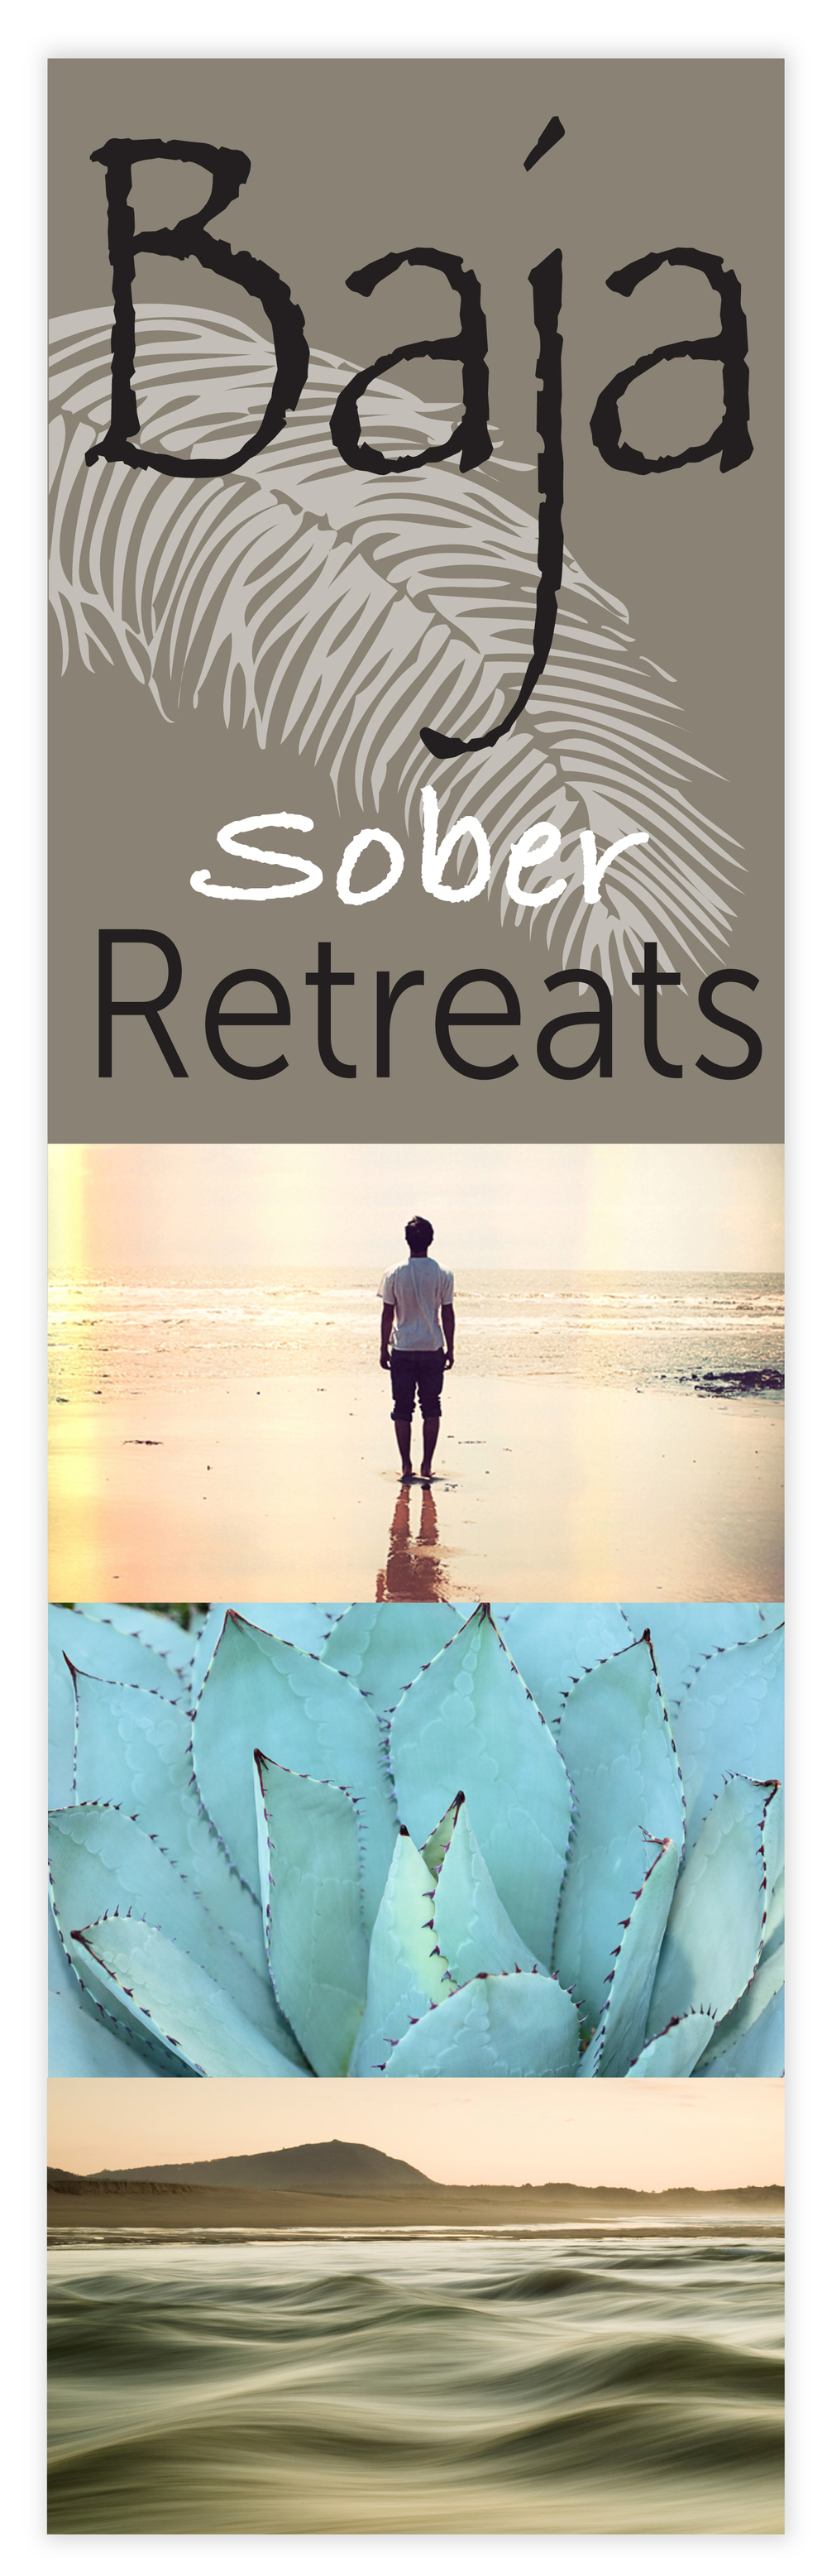 Join us in Baja for a Sober Retreat in 2015